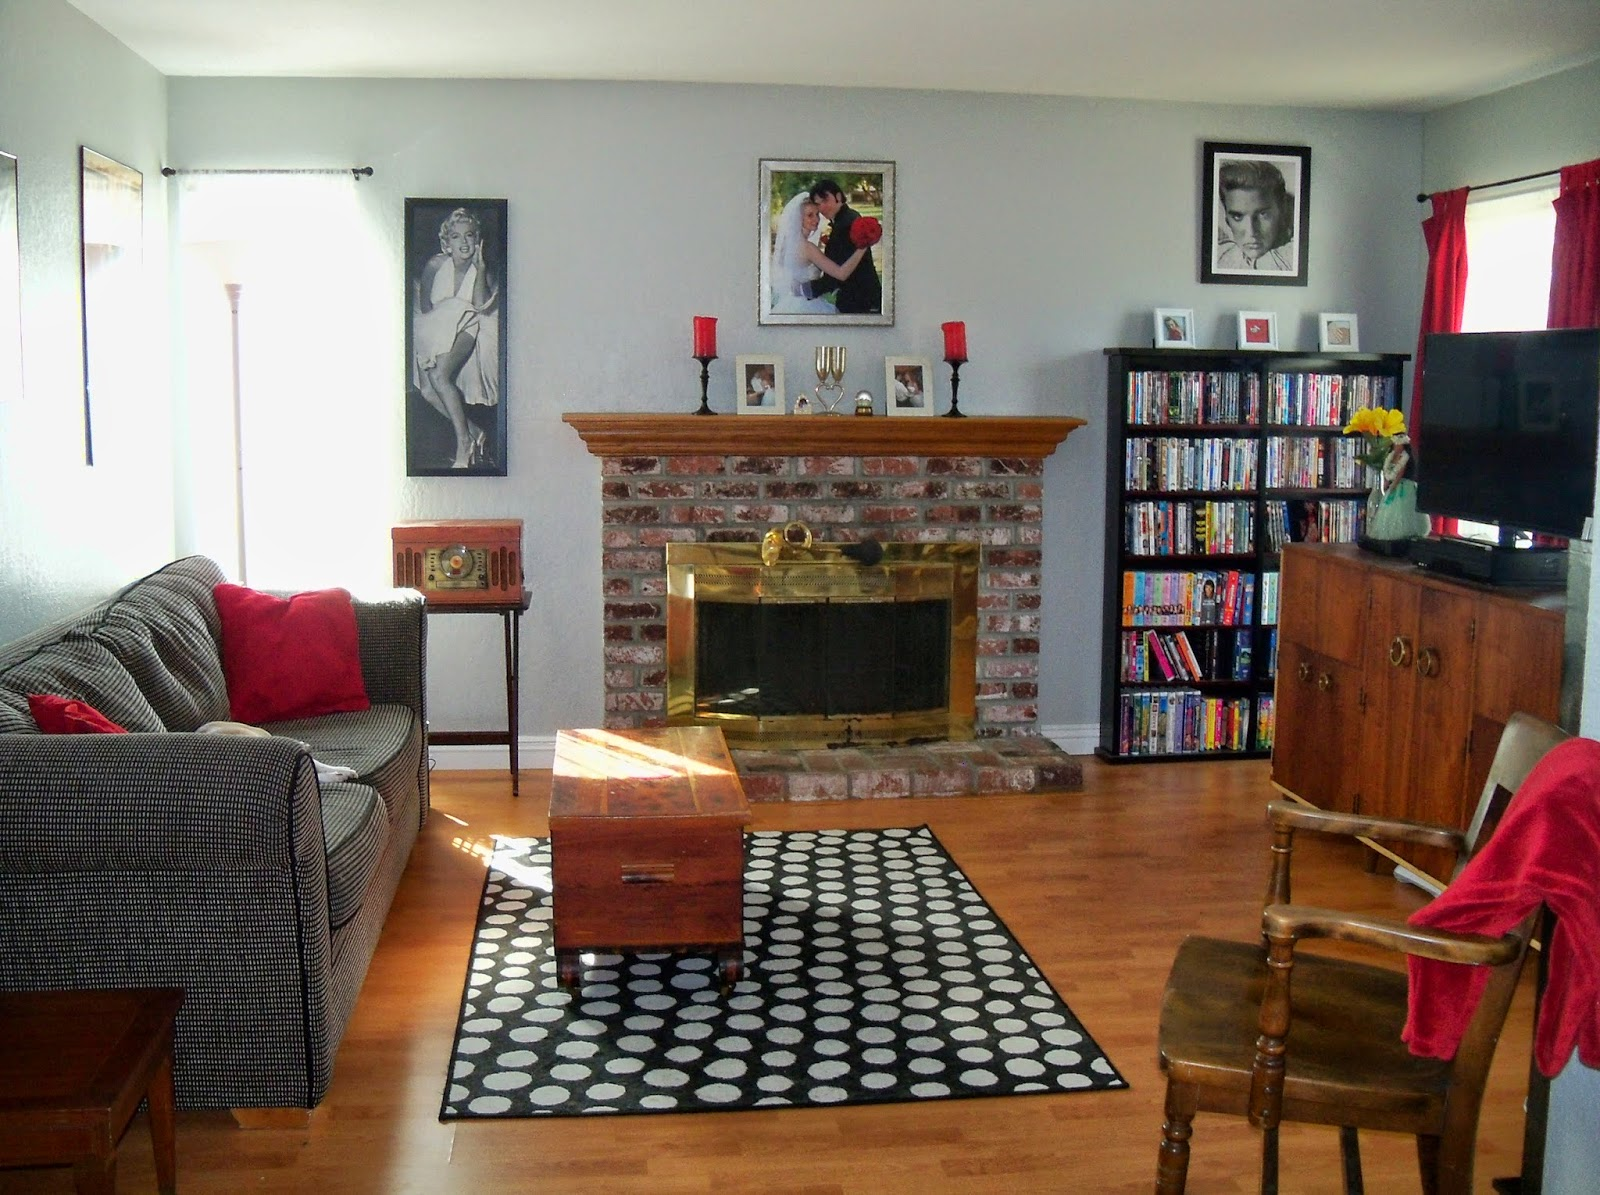 My Childhood Home, Furnished by Craigslist: The Living Room